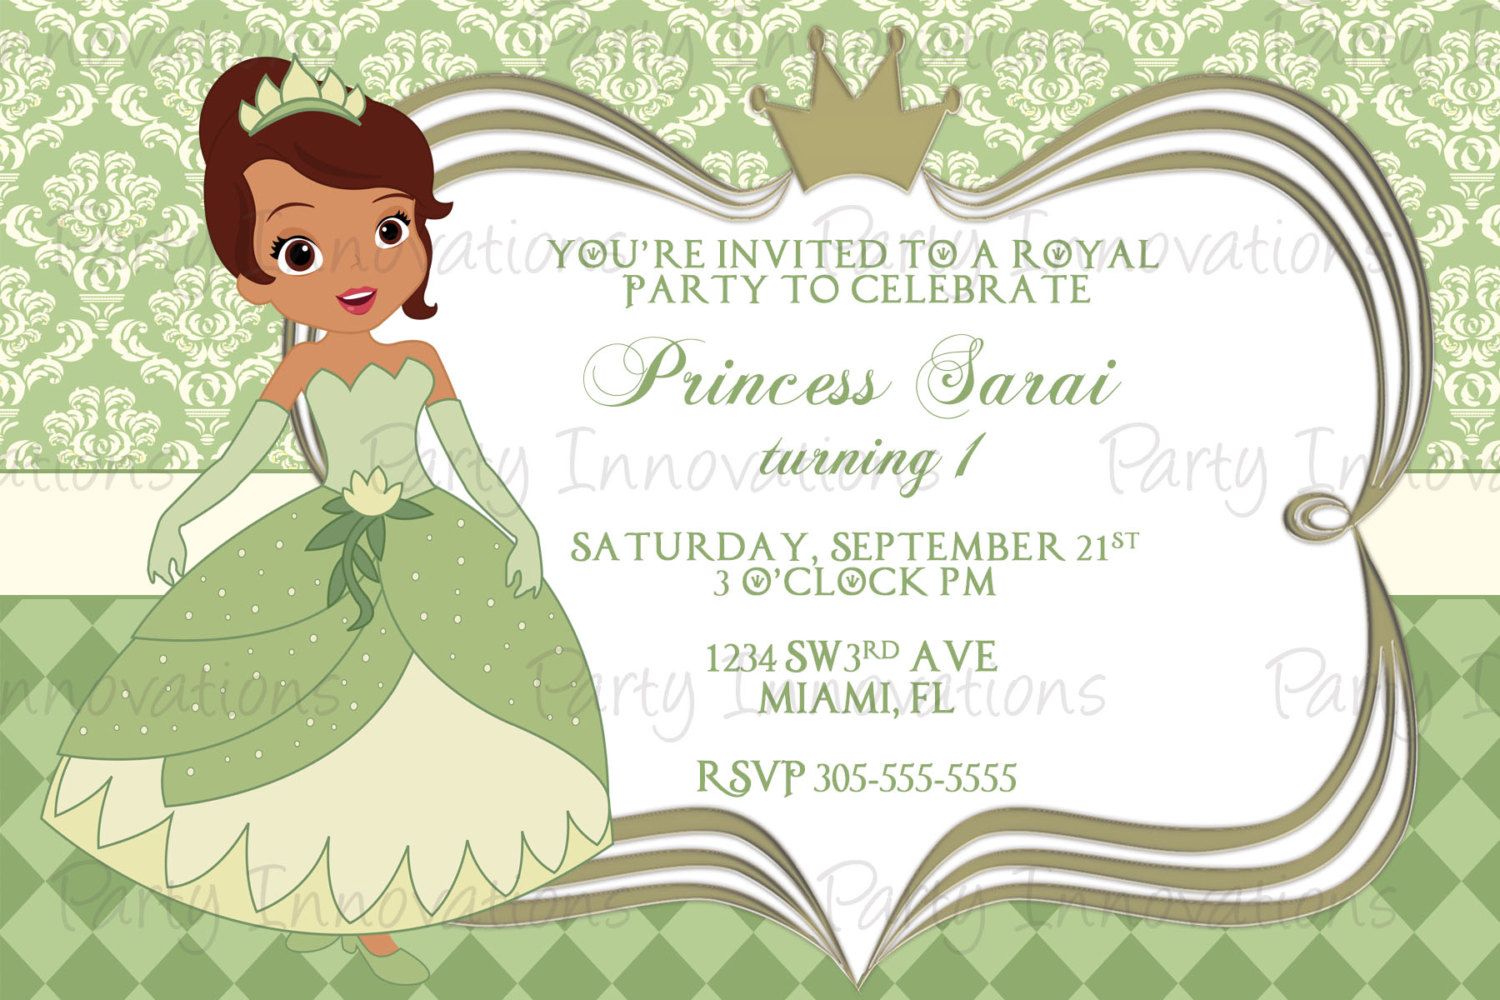 Frog Wedding Invitations: Princess And The Frog Birthday Invitations